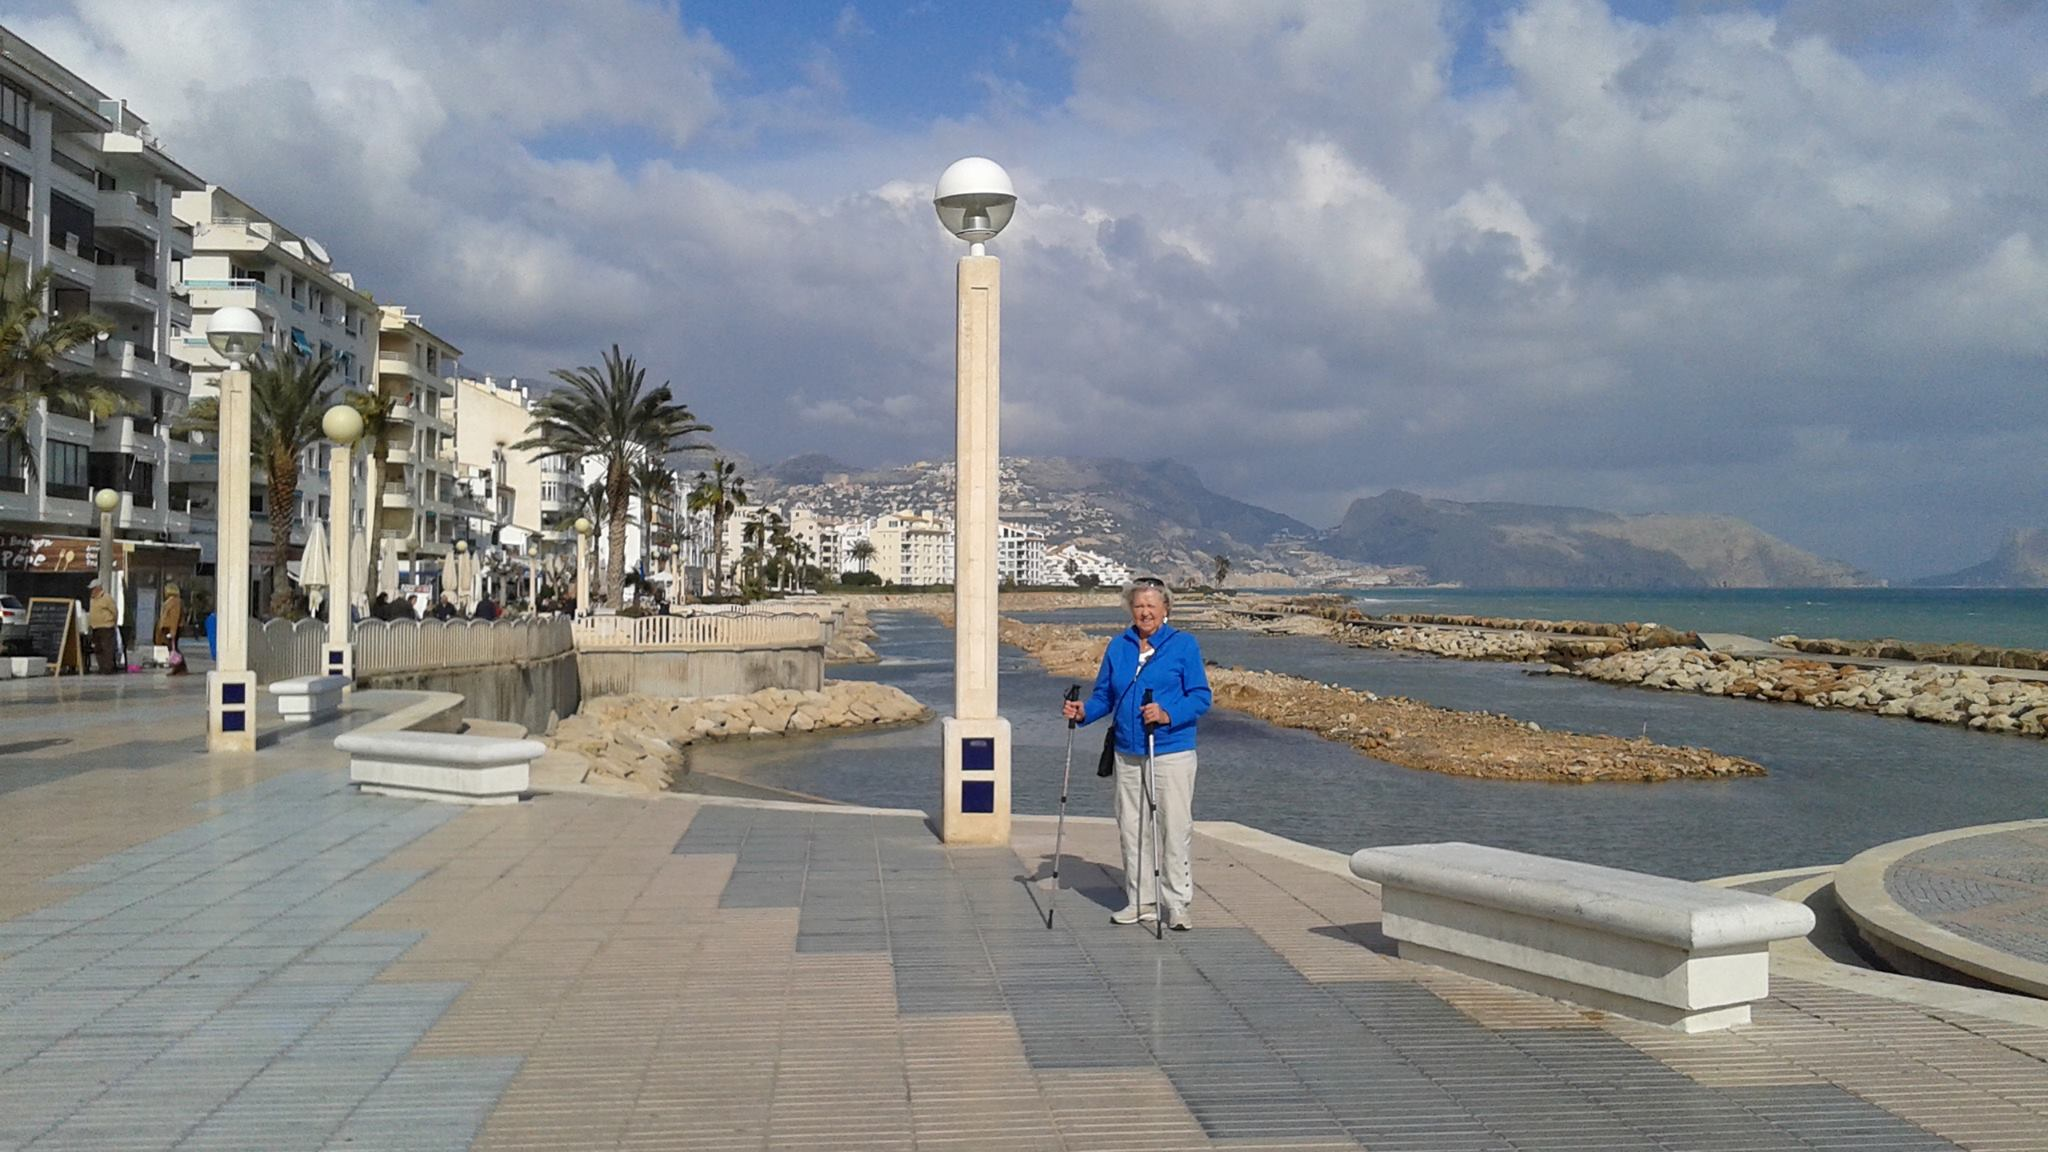 Kari in Altea